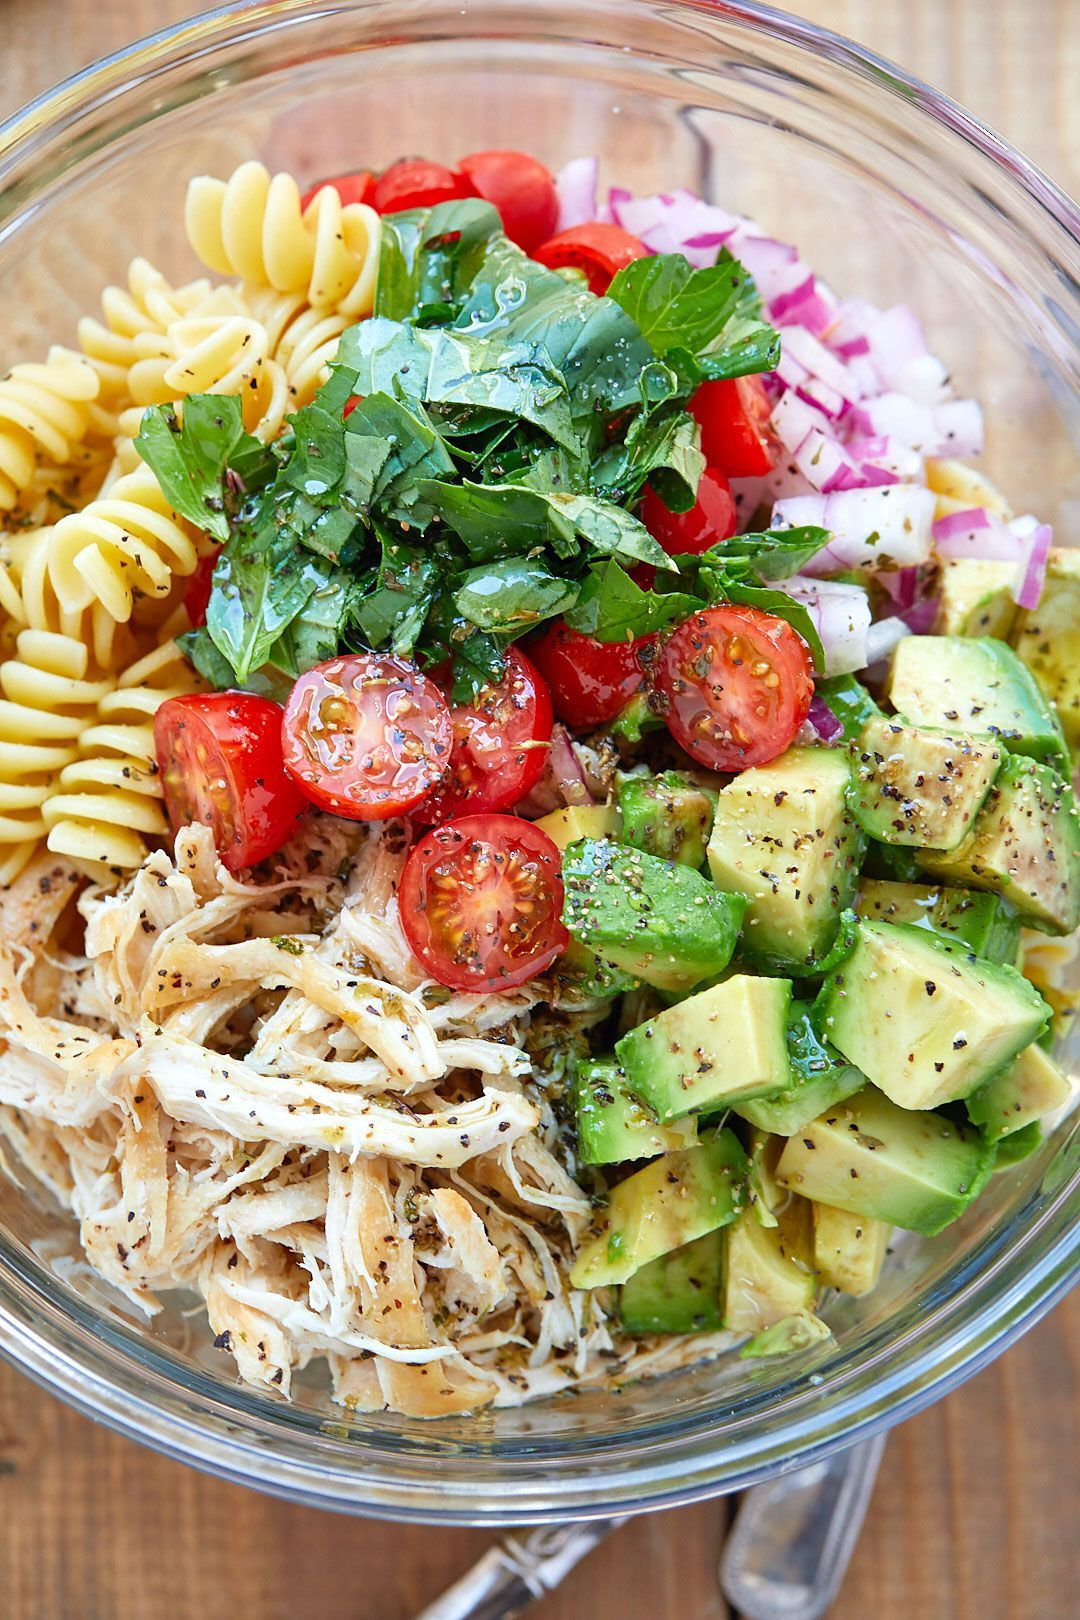 Chicken Pasta Salad with Avocado, Tomato, and Basil  Healthy Chicken Pasta Salad - - Packed with flavor, protein and veggies! This healthy chicken pasta salad is loaded with tomatoes, avocado, and fresh basil. - byHealthy Chicken Pasta Salad - - Packed with flavor, protein and veggies! This healthy chicken pasta salad is loaded with tomatoes, avocado, a...